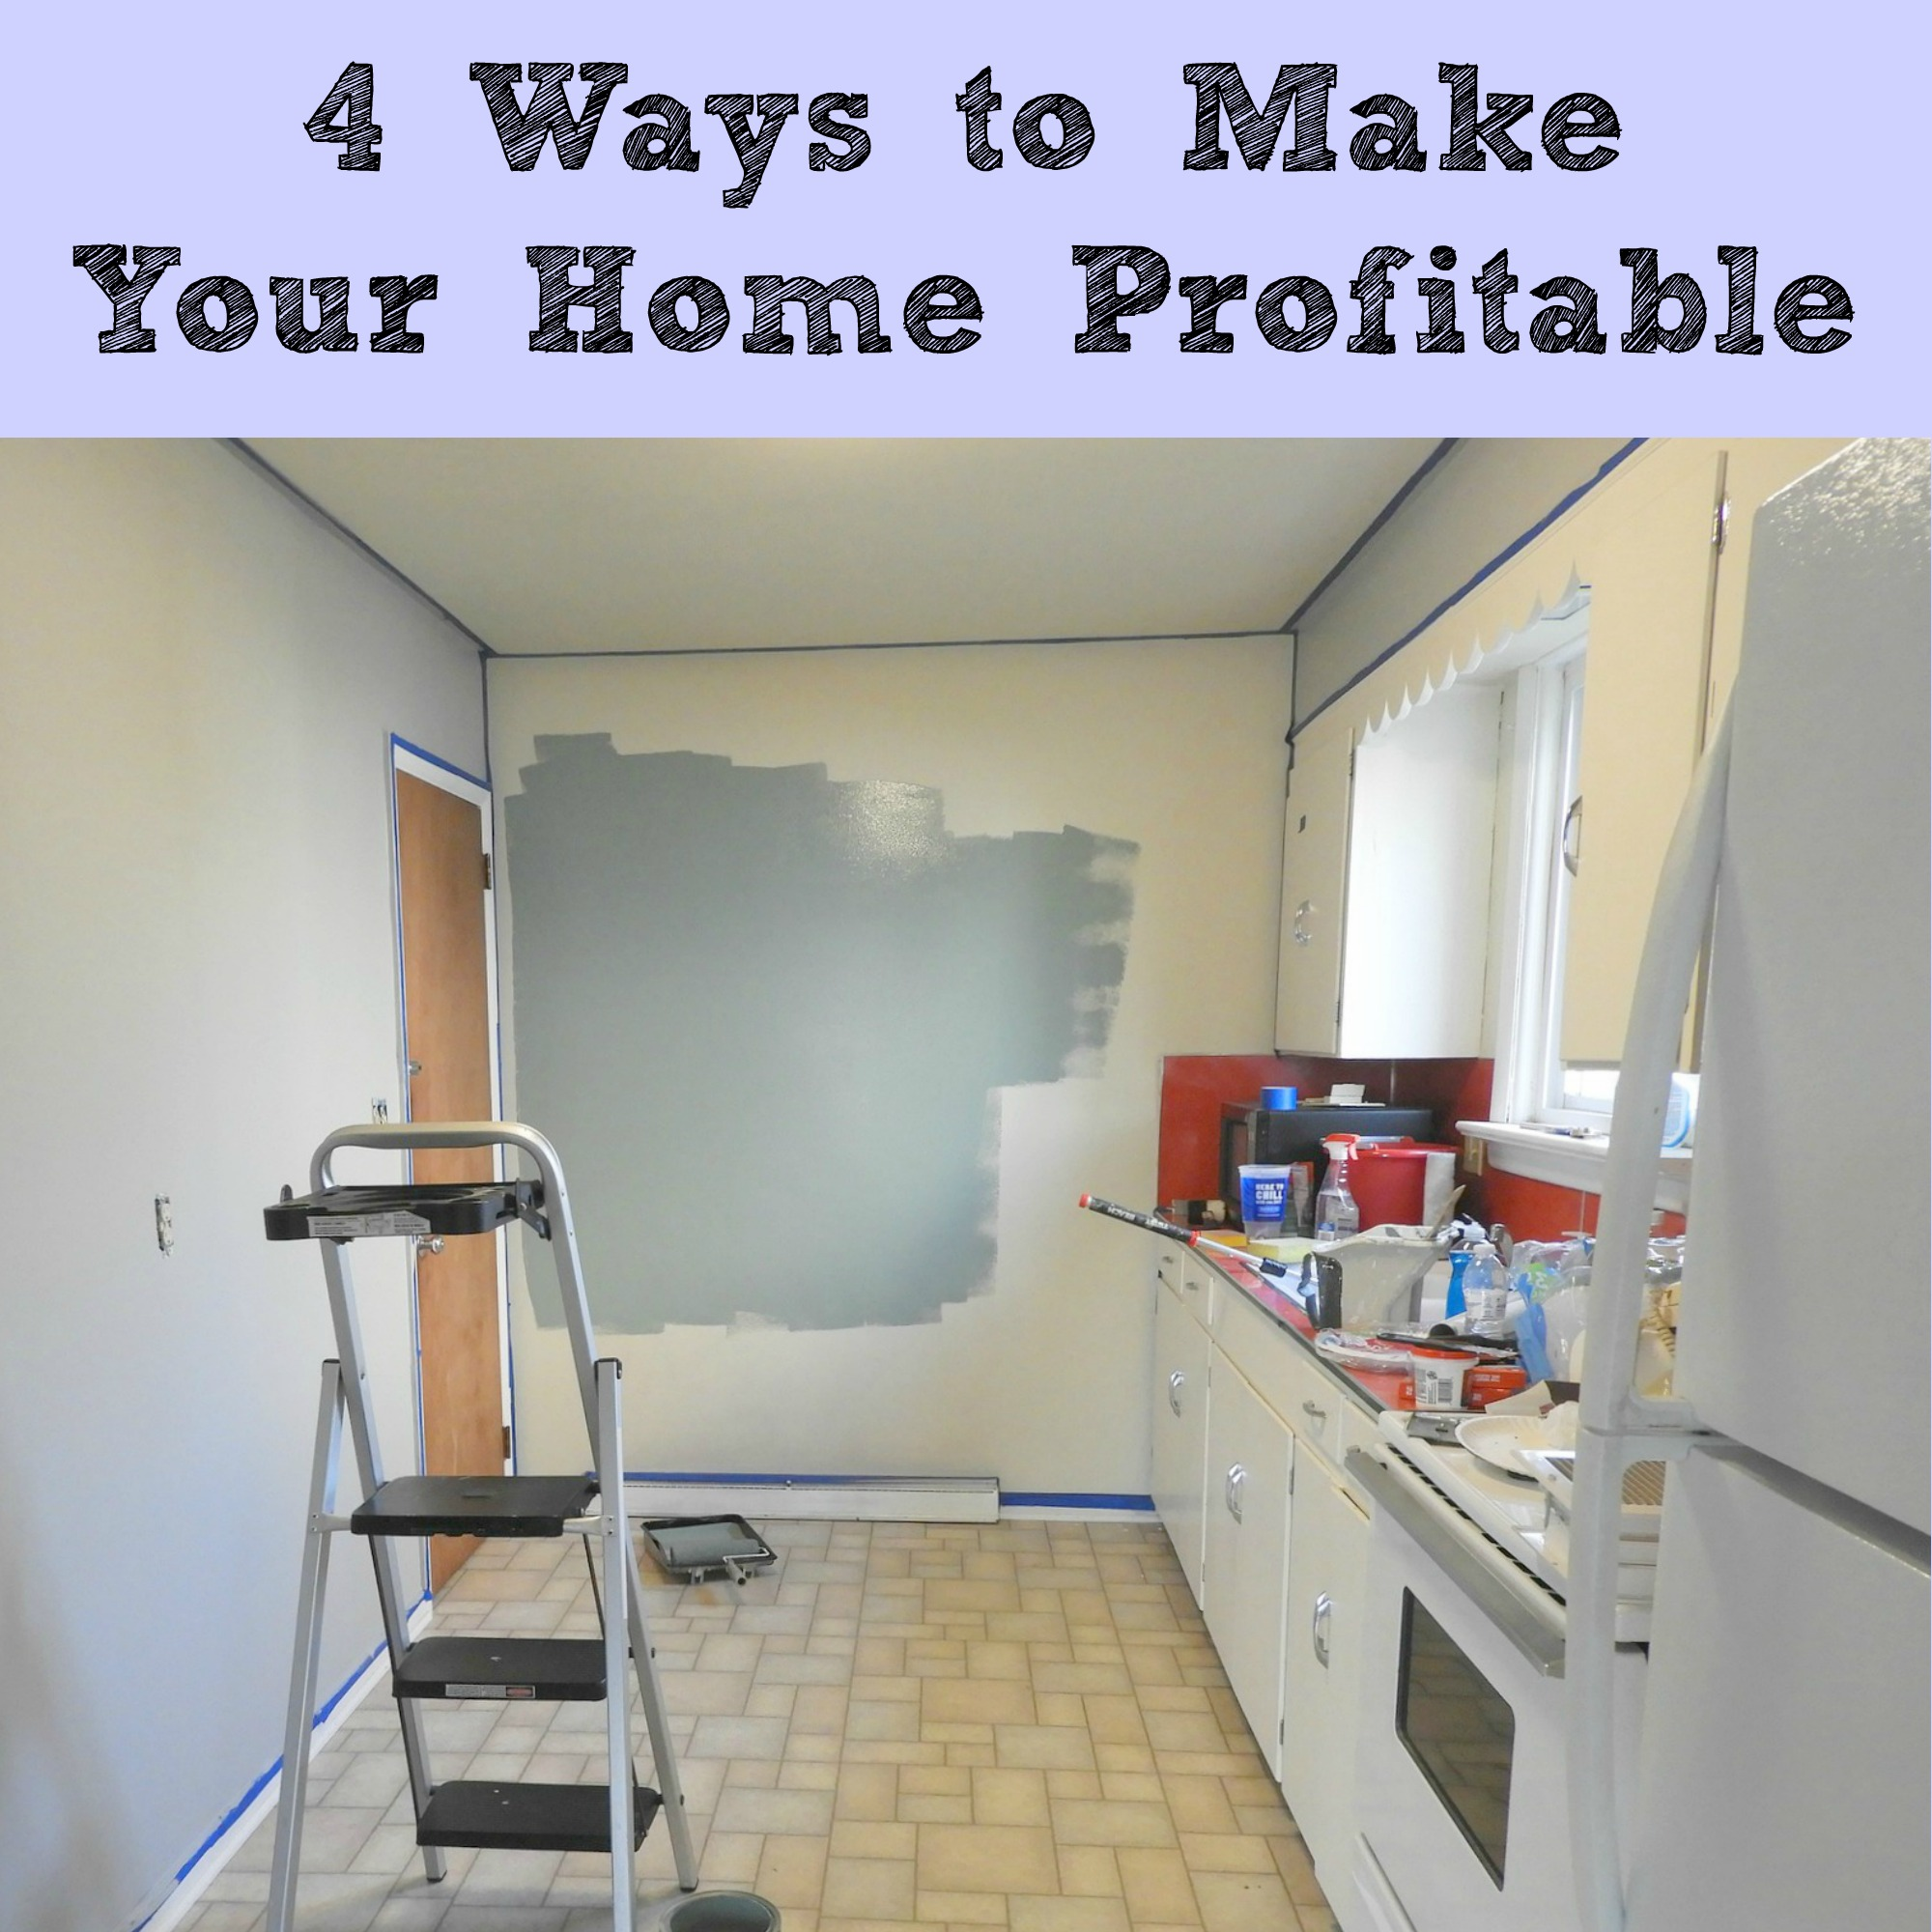 4 Ways to Make Your Home Profitable